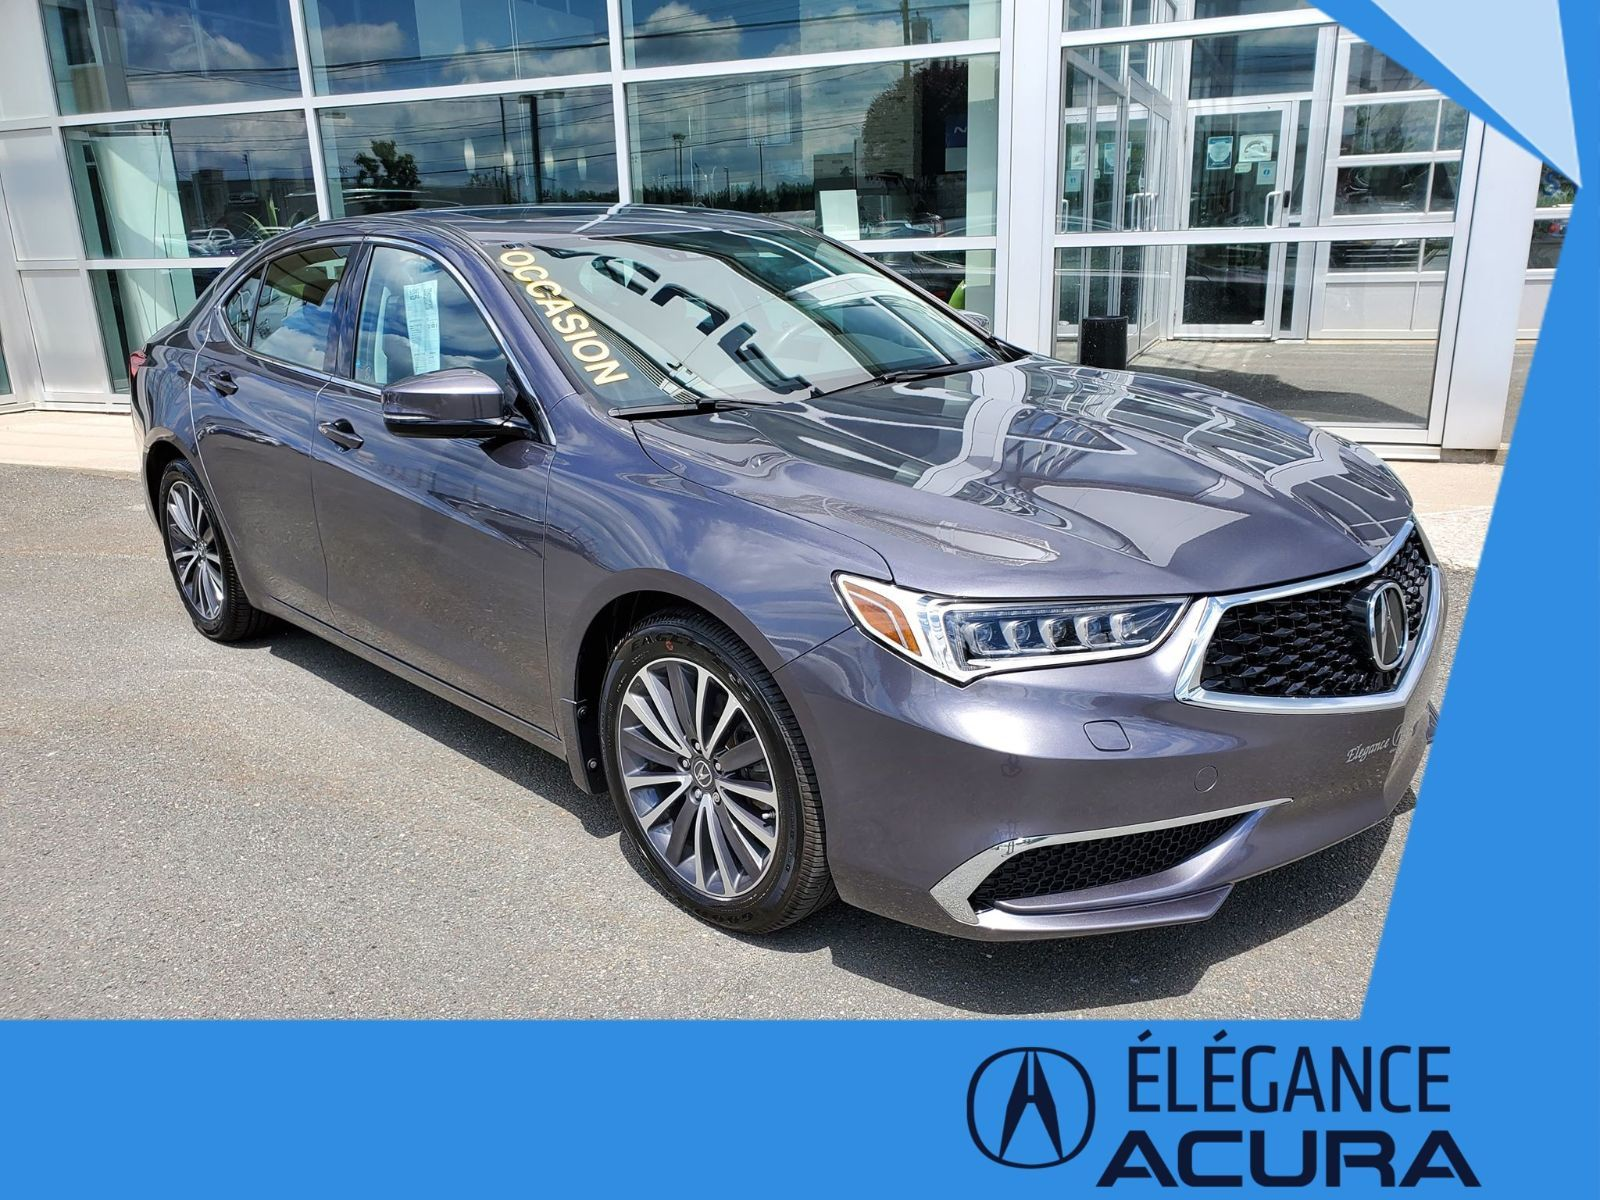 Elegance Acura Pre Owned 2018 Acura Tlx Tech Sh Awd For Sale In Granby